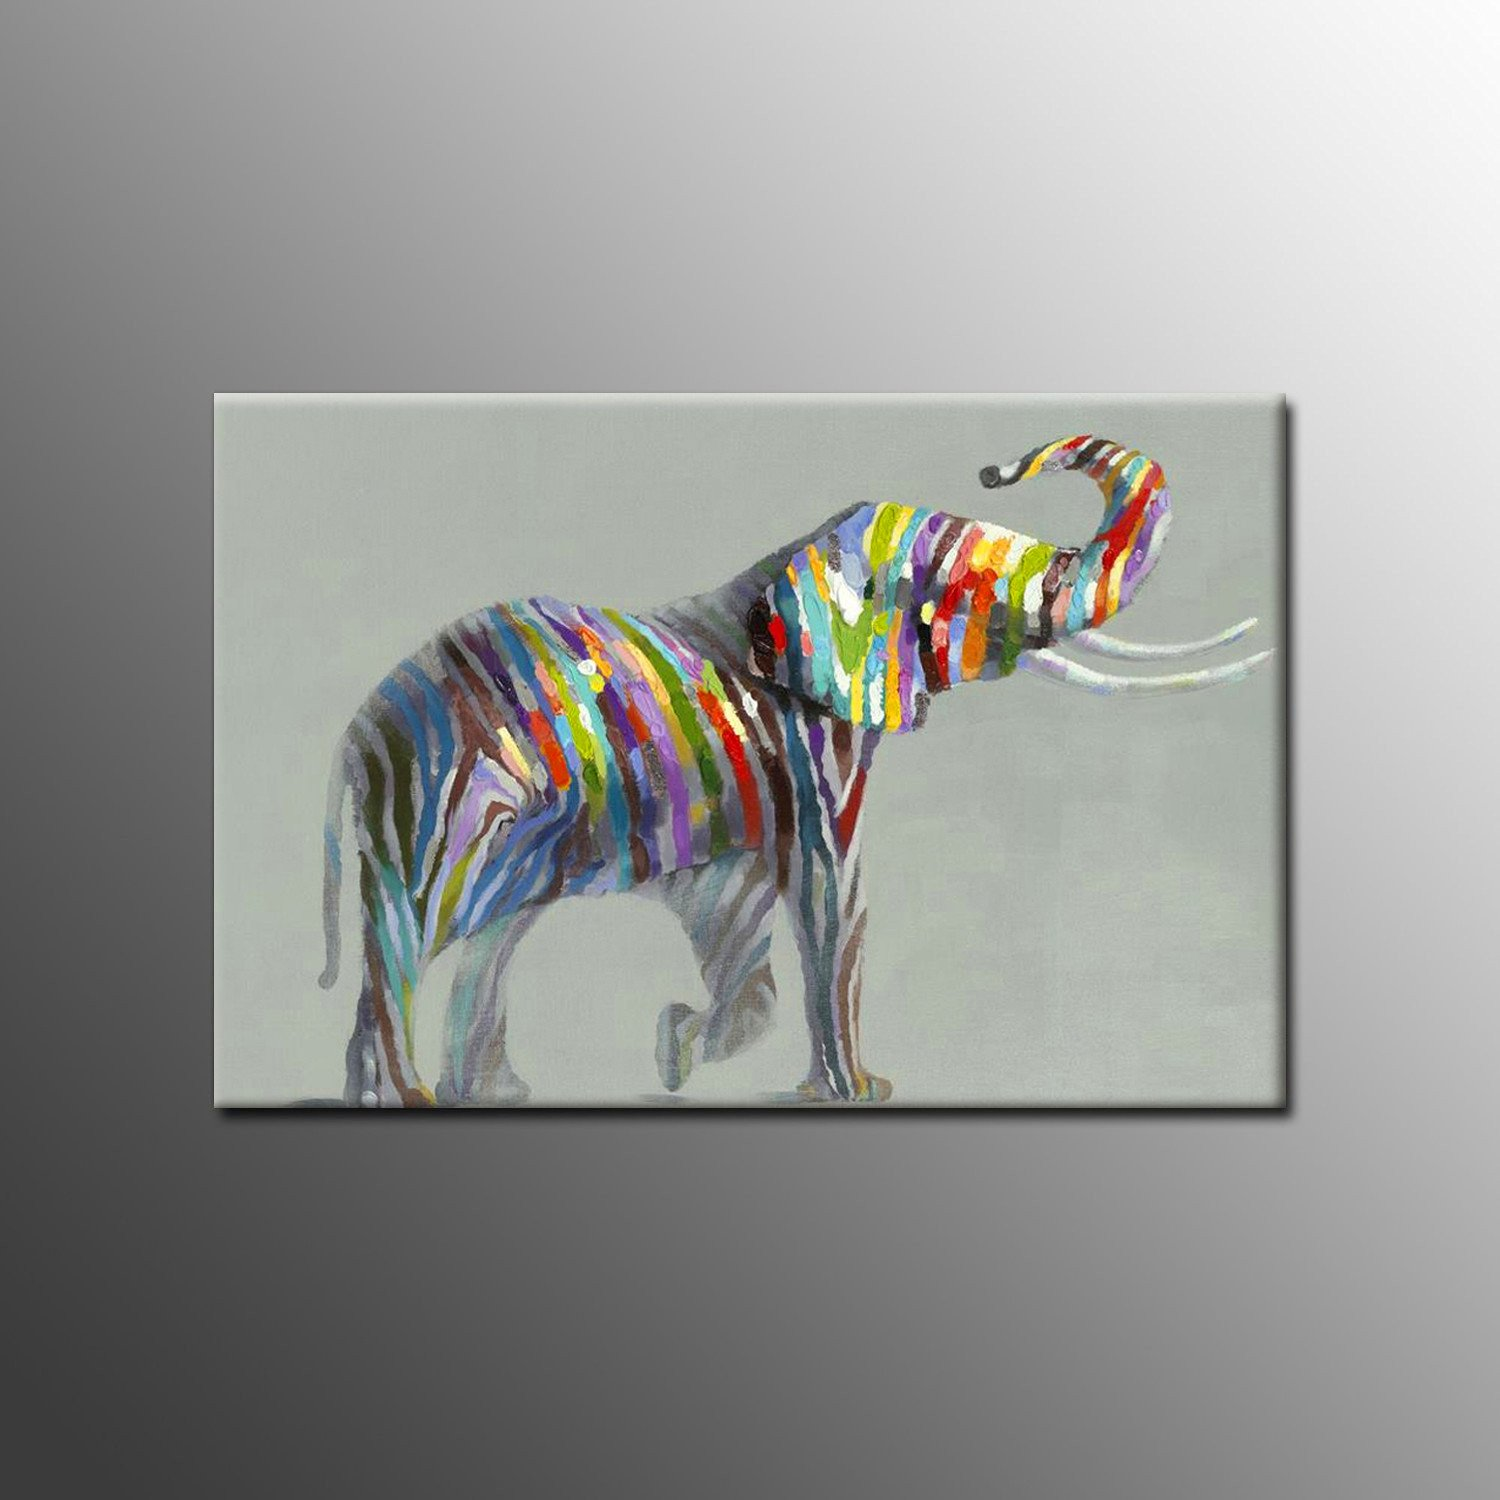 UAC WALL ARTS 100% Hand-painted Oil Painting on Canvas Colorful Elephant 24x36inch(Stretch / Frame)Modern Art Wall Art Home Decoration for Living Room